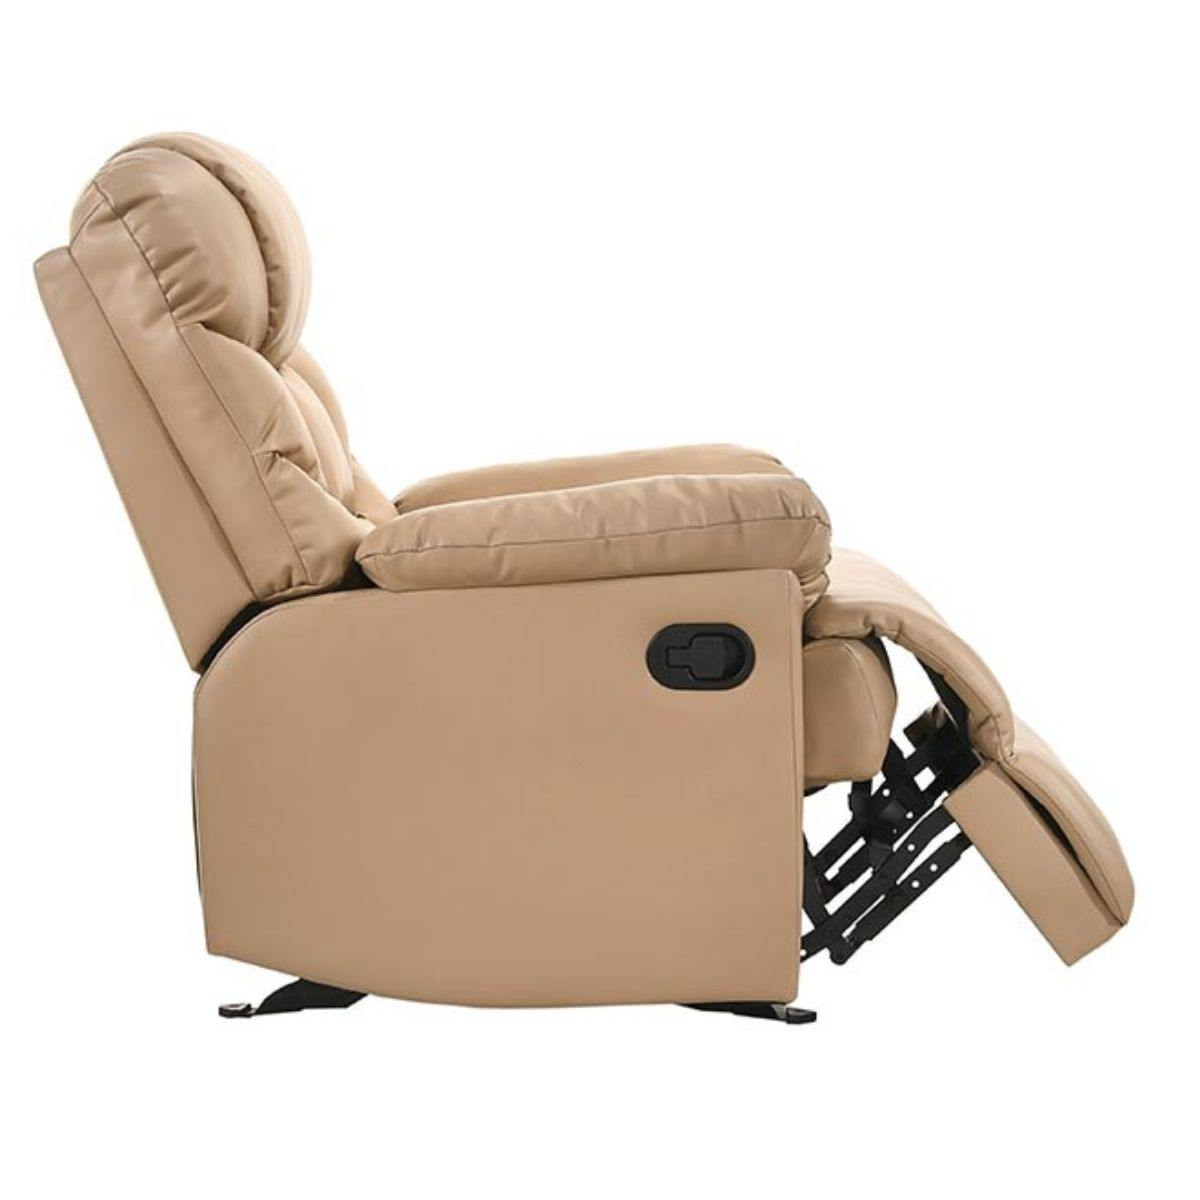 Leather Rocking Recliner Chair Armchair Swing Gliding Beige - Evopia